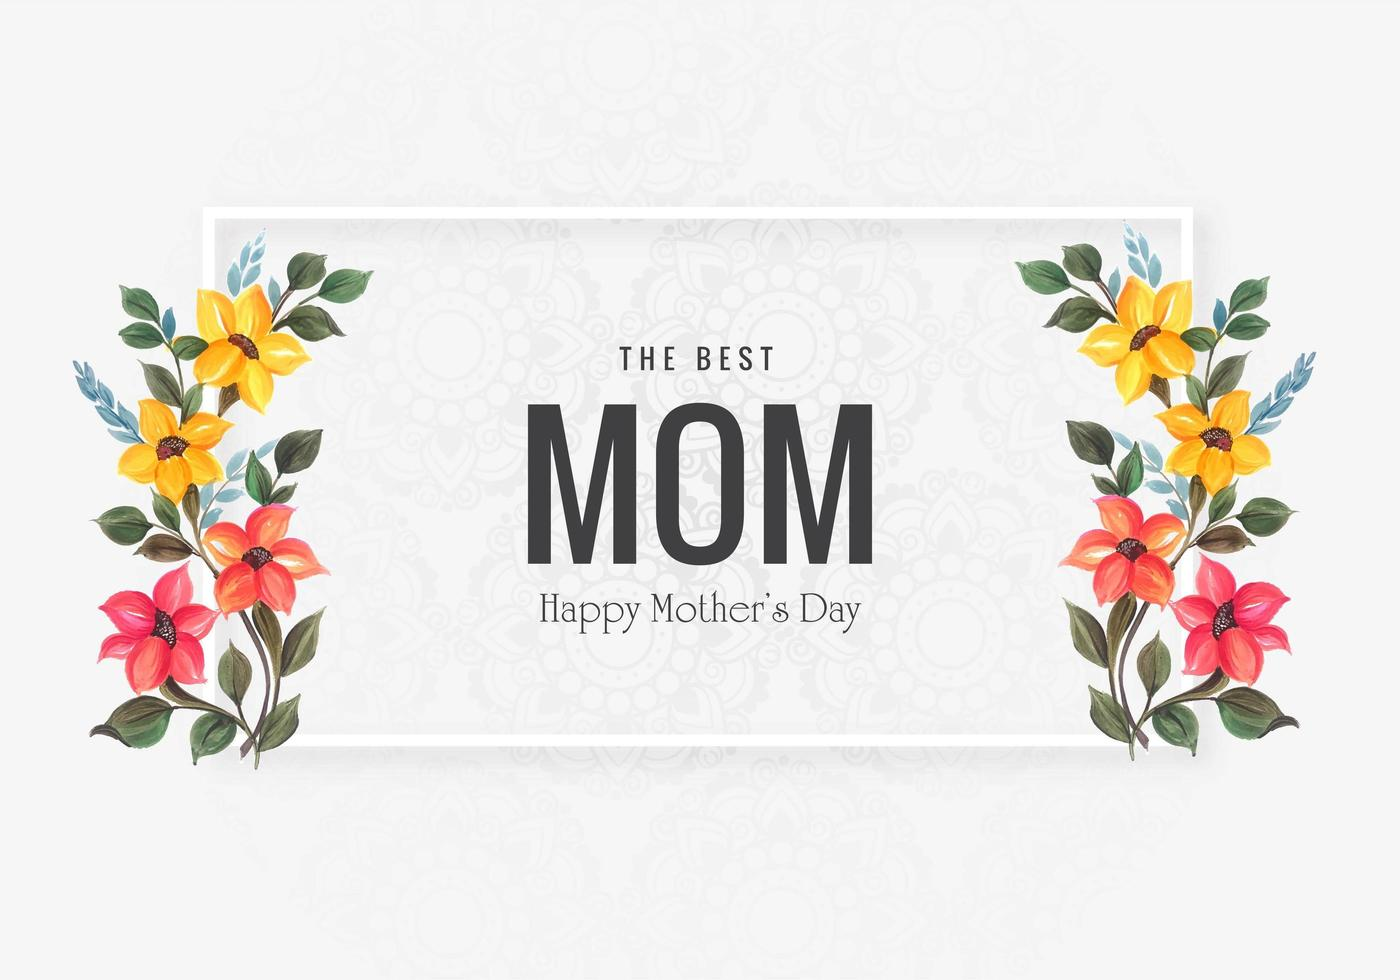 Happy Mother's Day card with decorative flowers vector